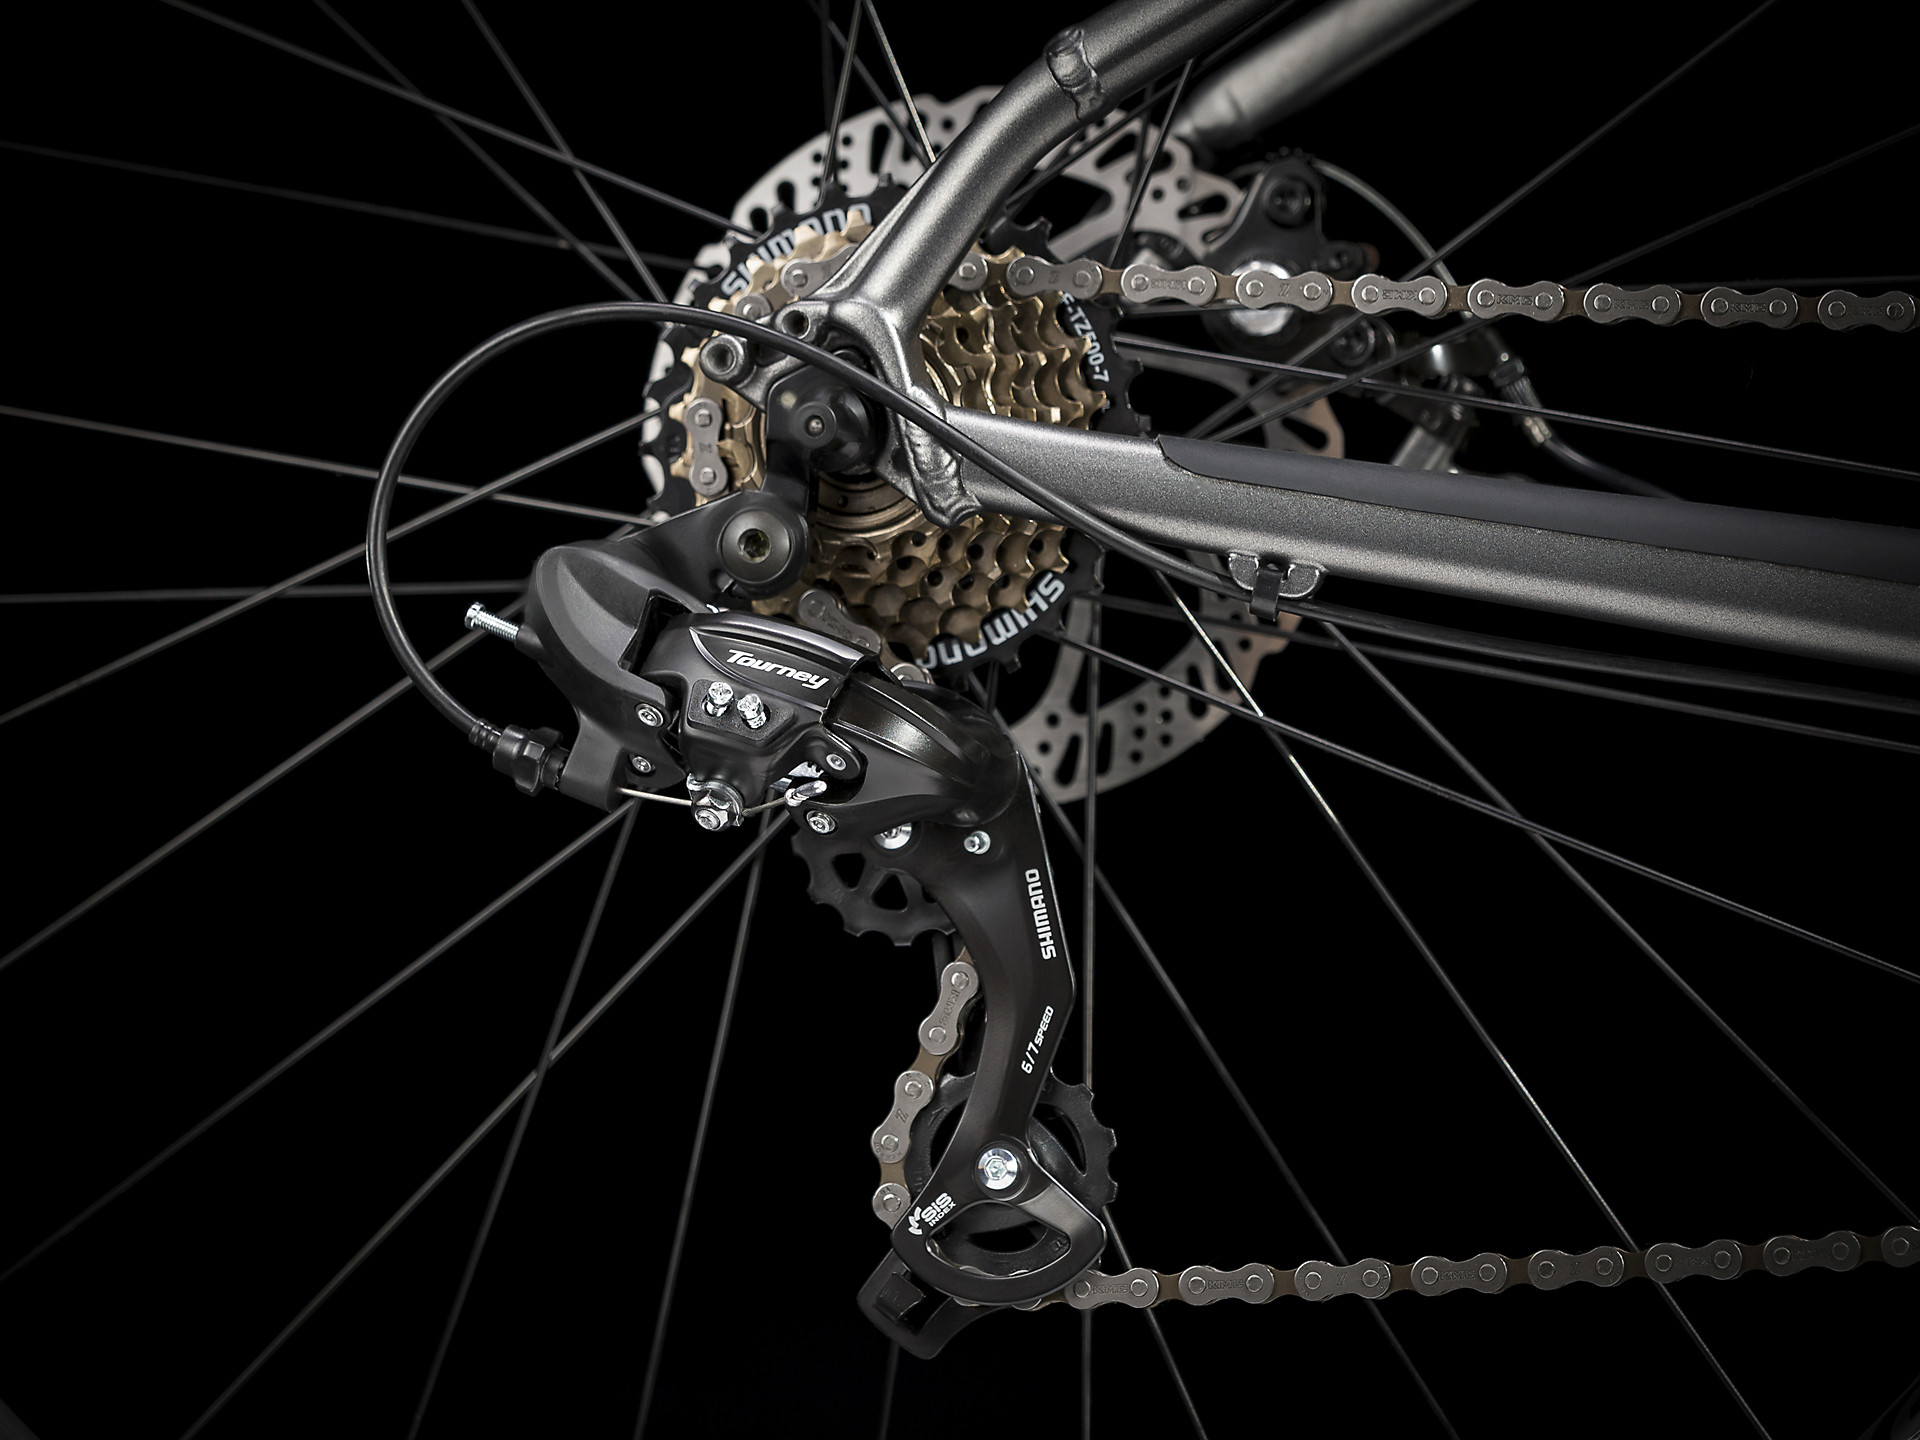 Shimano Tourney entry-level rear derailleur